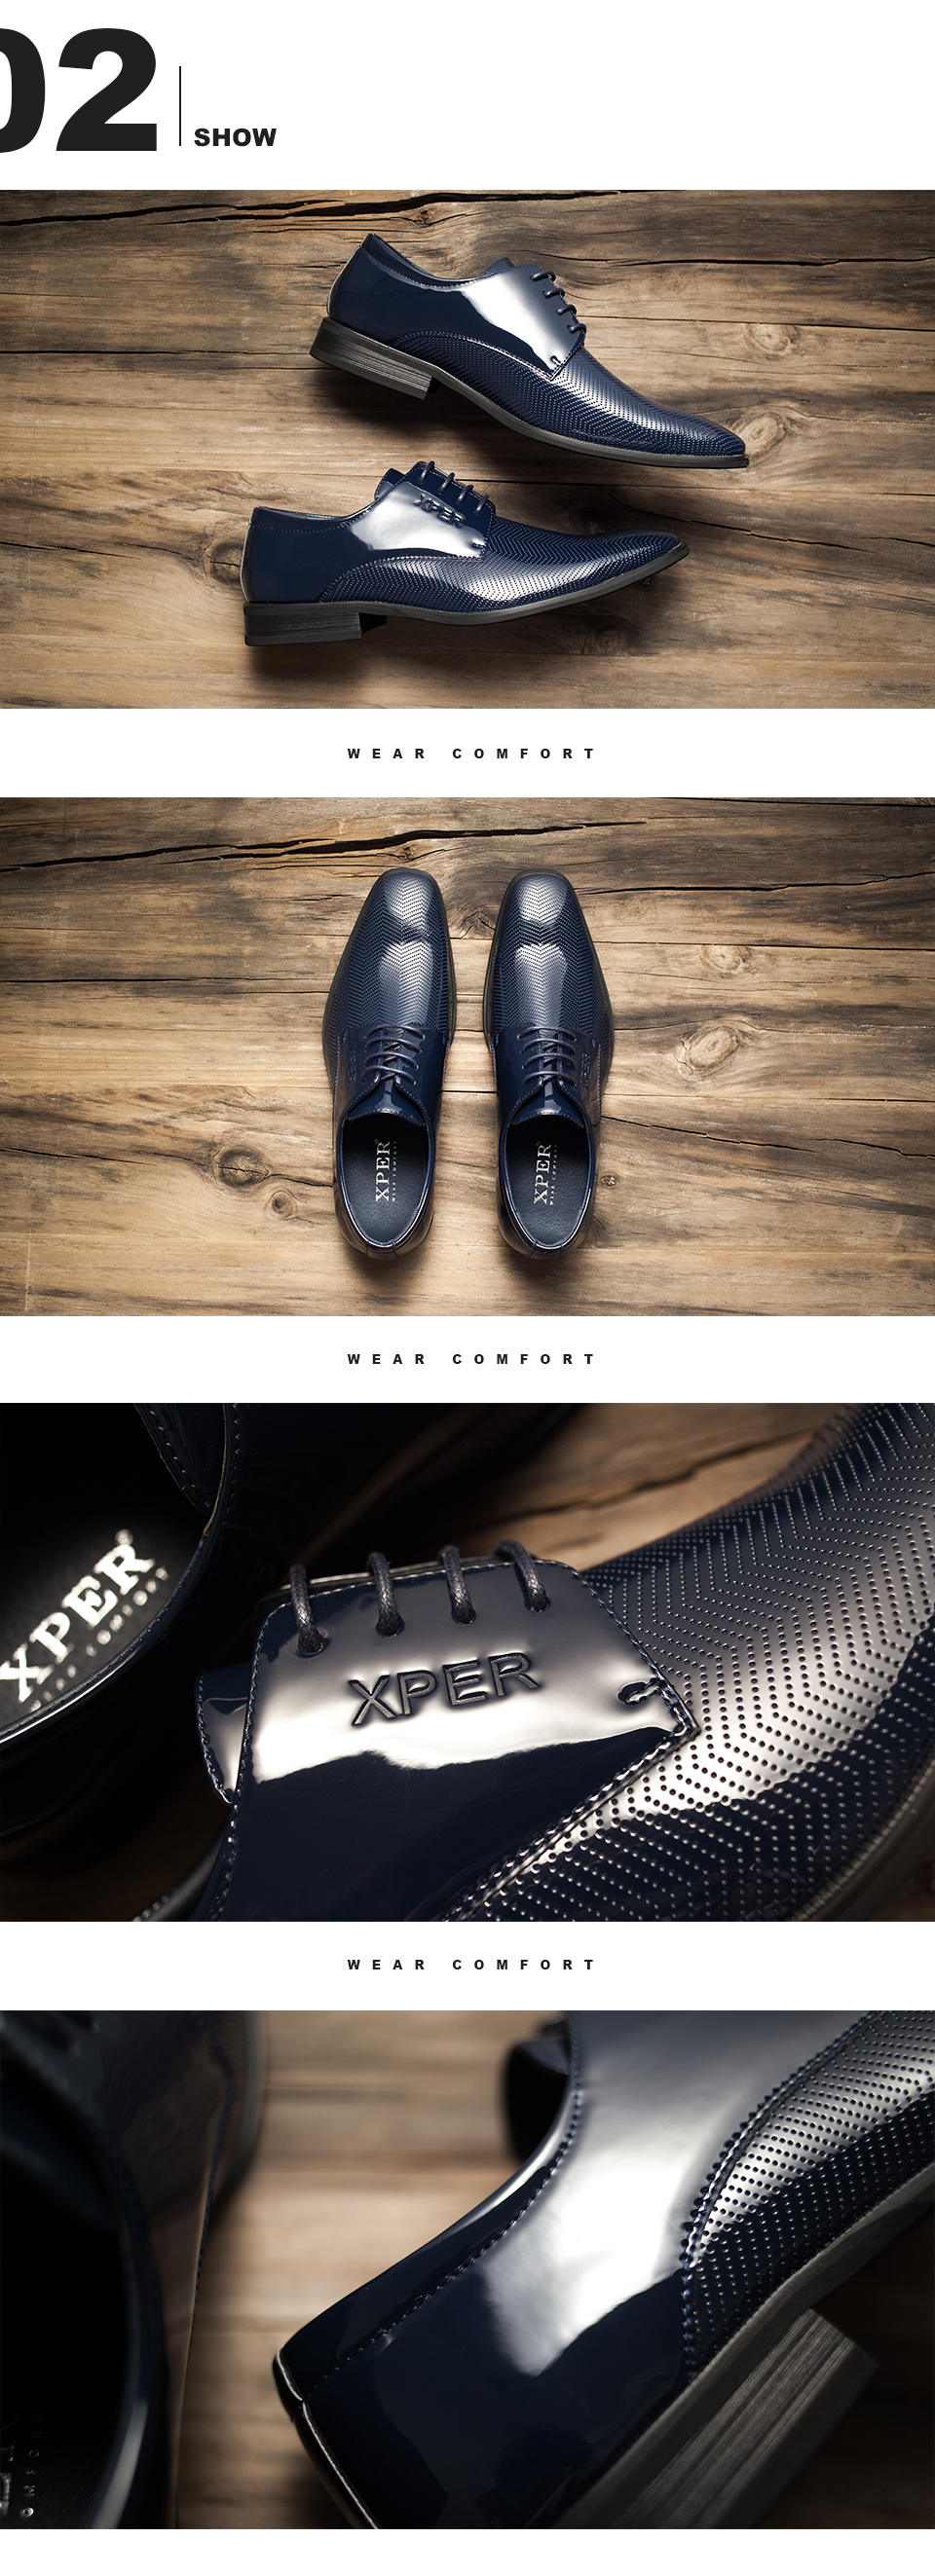 XPER Brand New Arrival Fashion Men Shoes Party and Wedding Men Dress Shoes Blue Formal Male Oxford Shoes XAF86D27